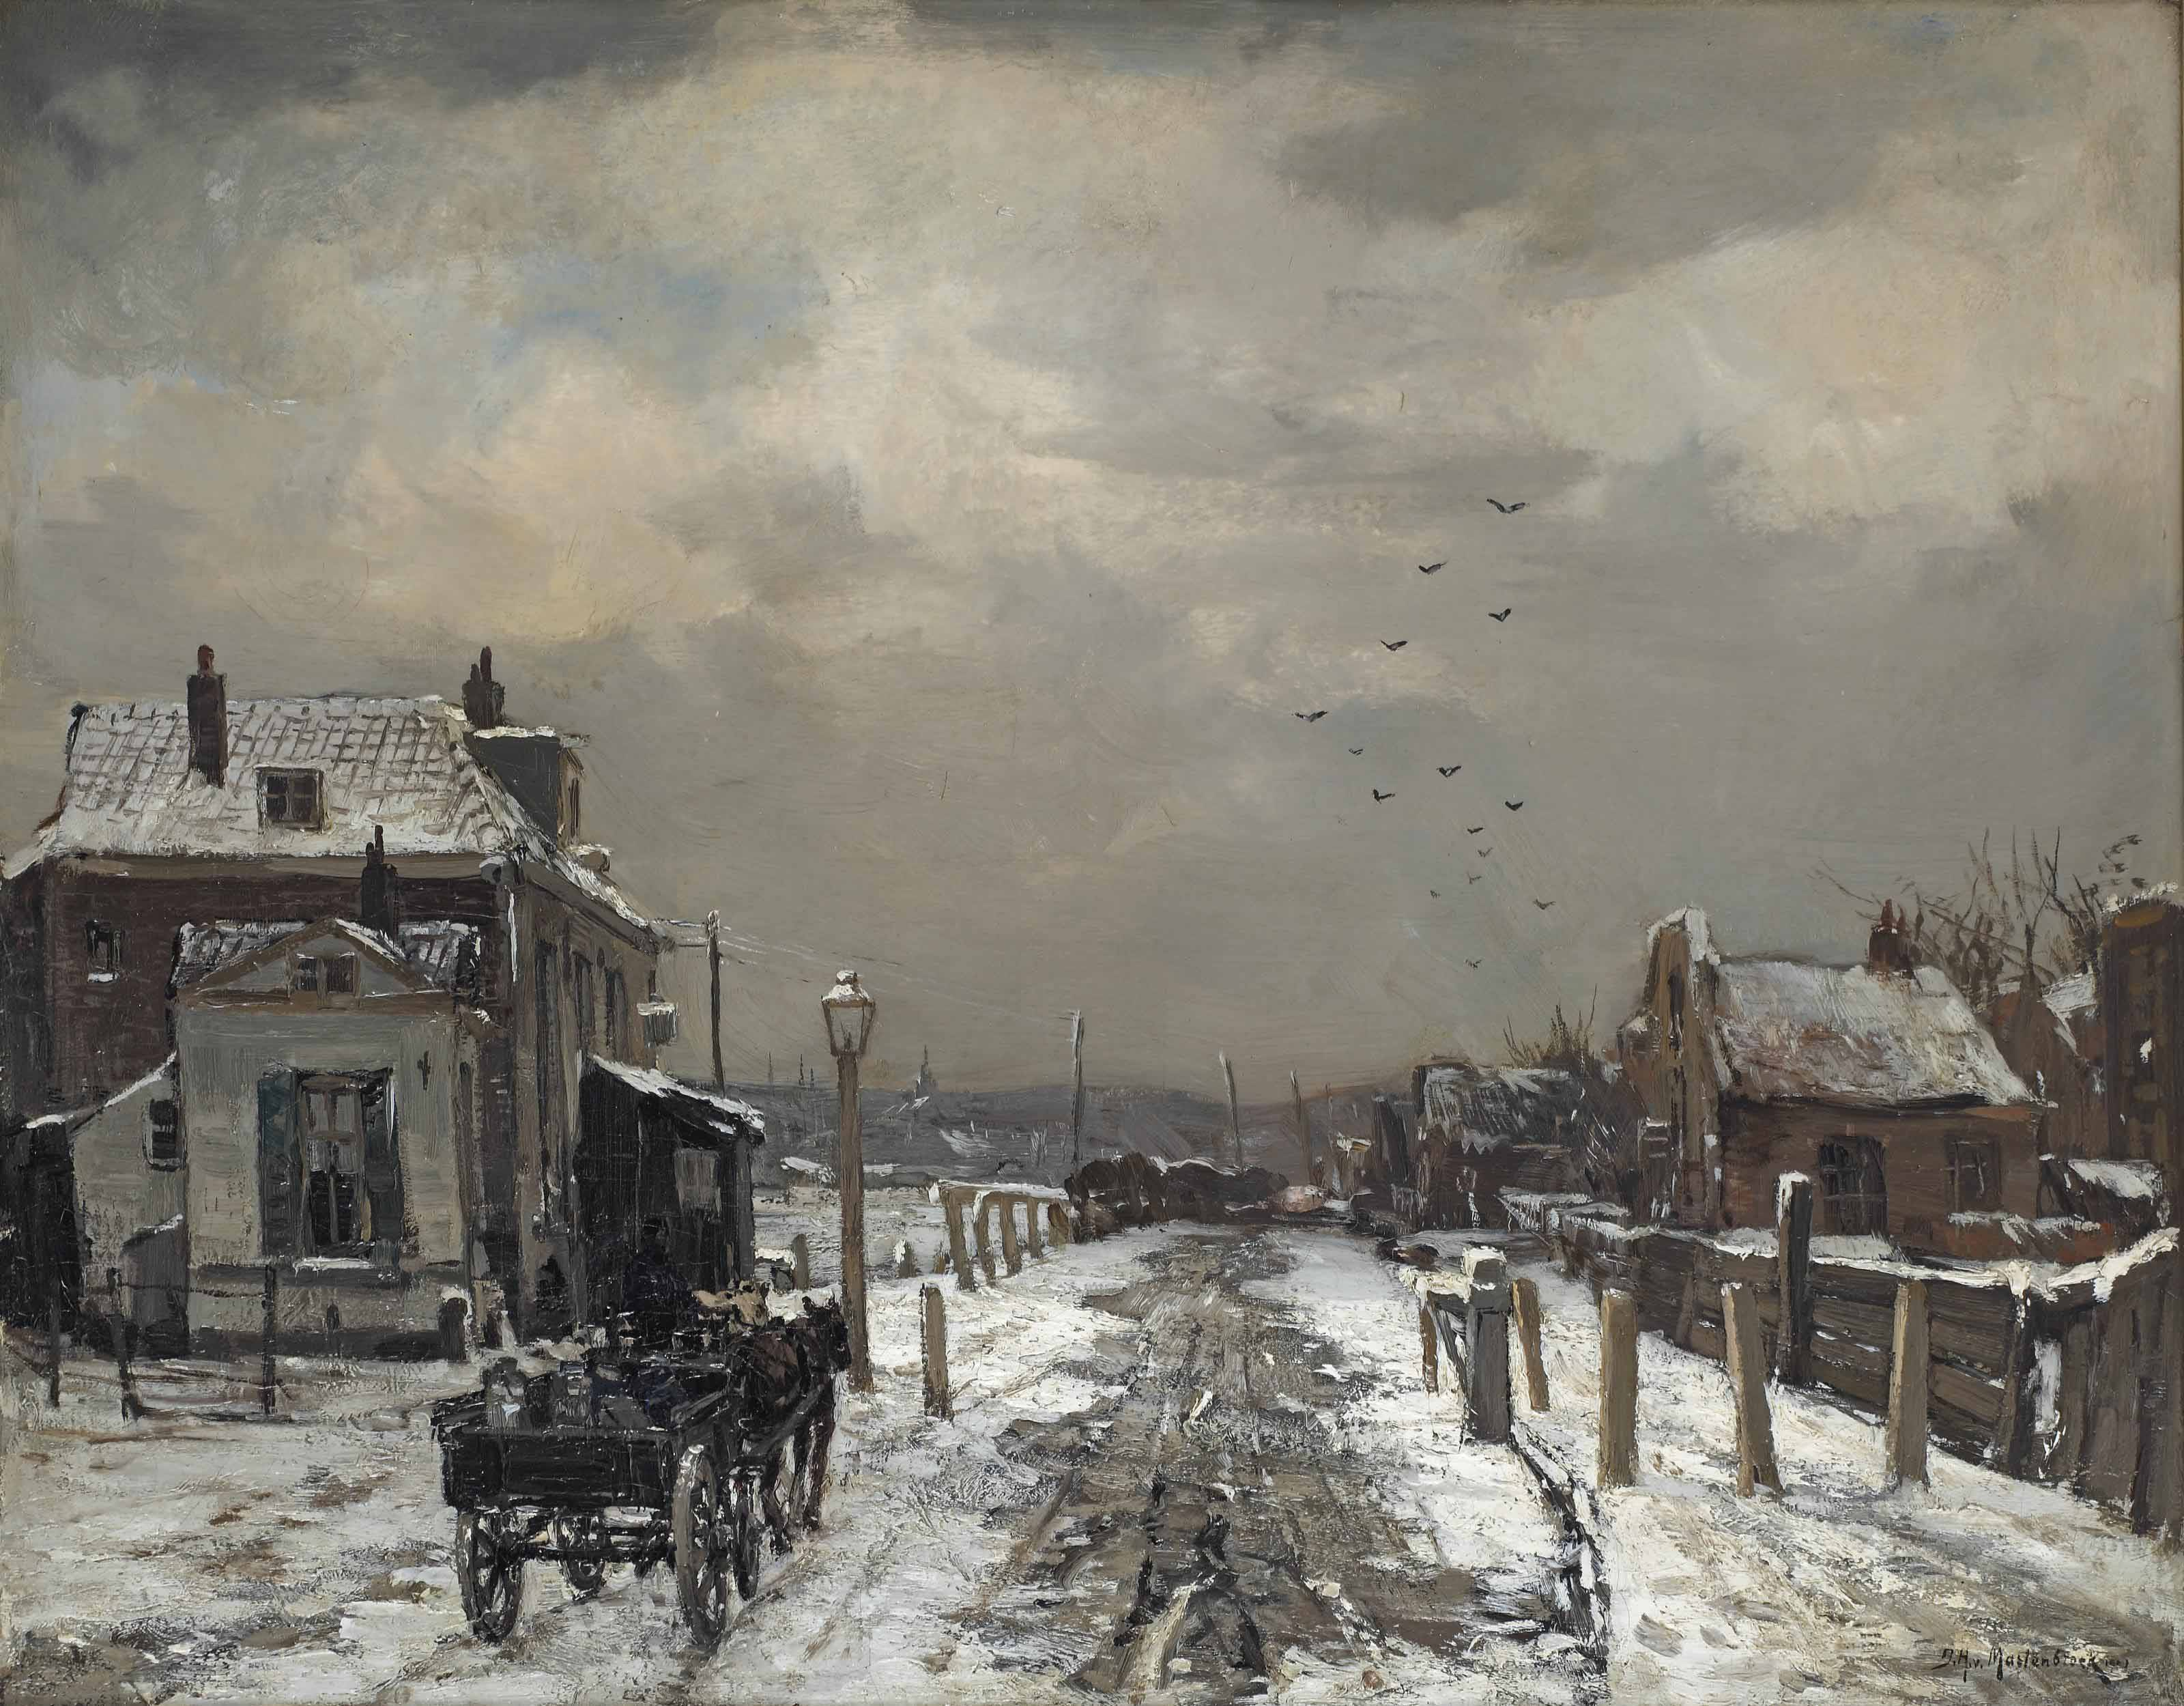 Winter: a horsedrawn carriage on a snowy path near a Dutch town